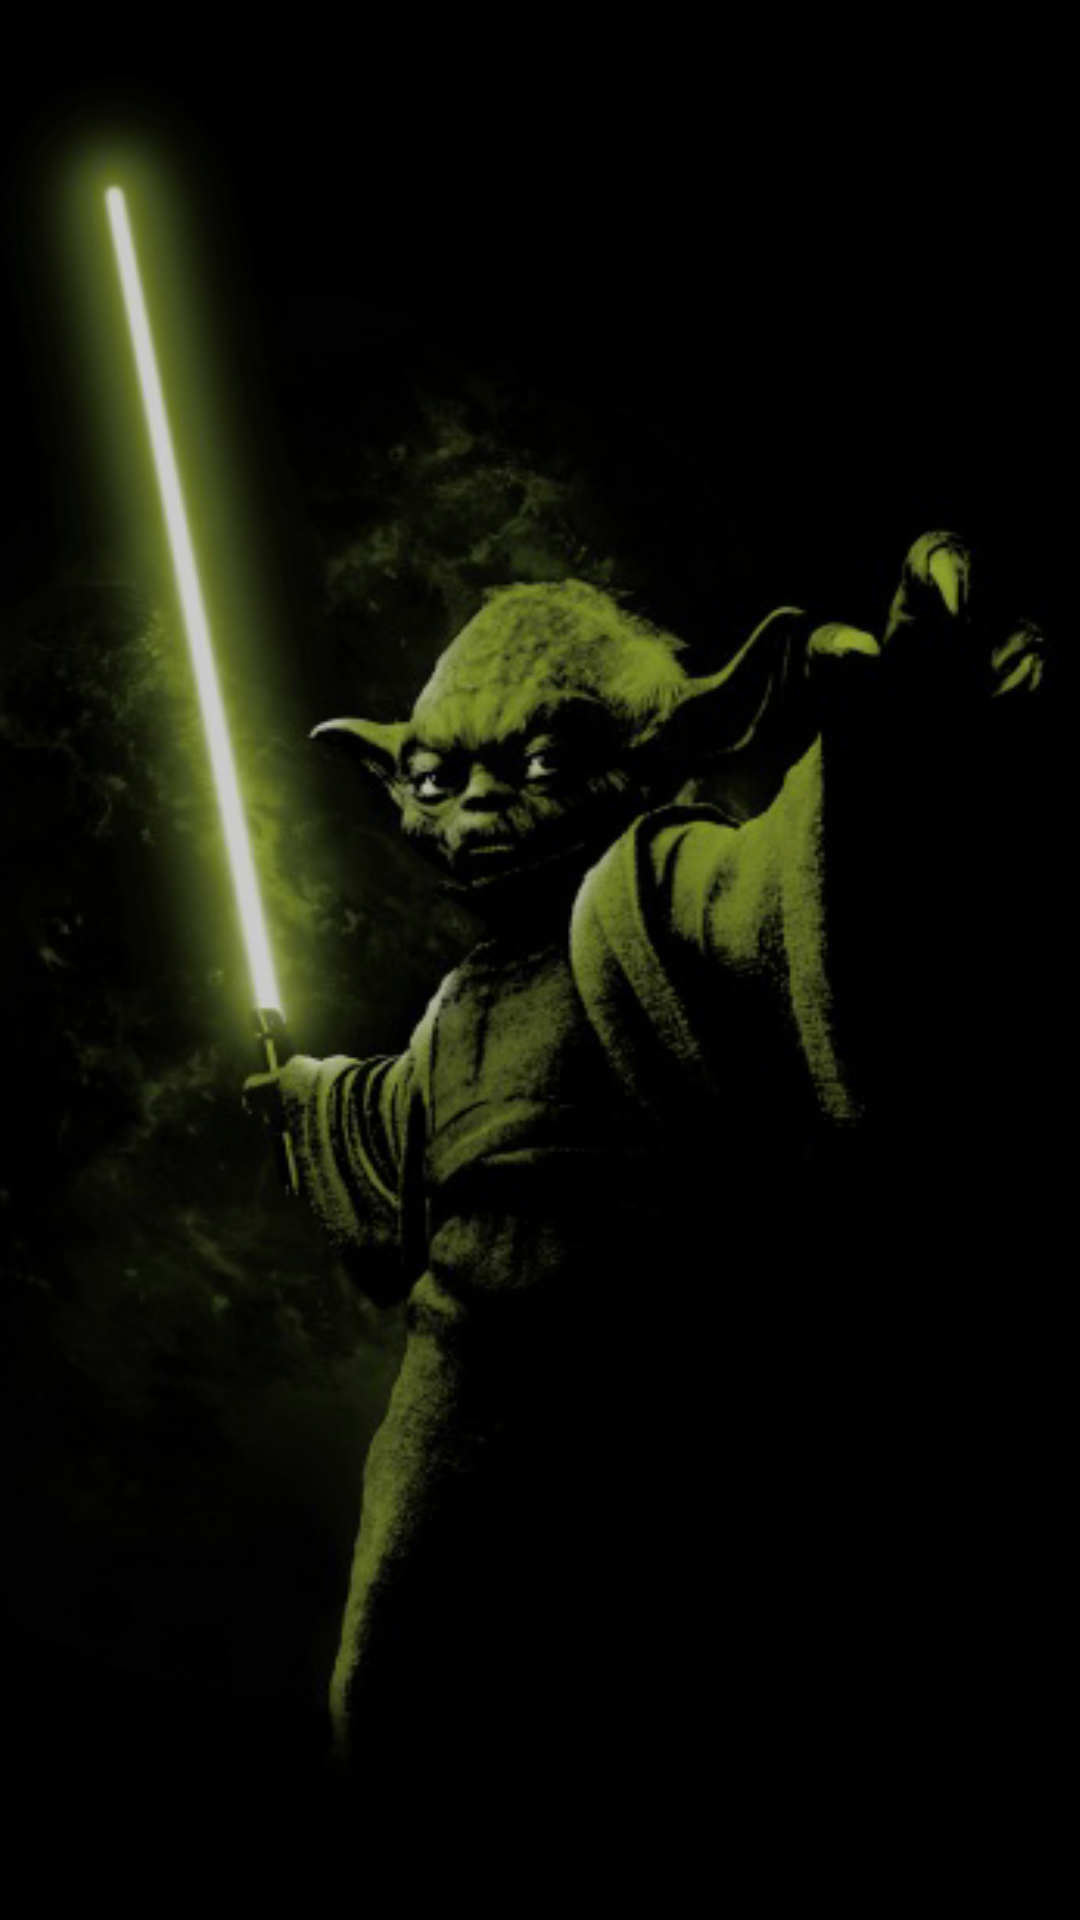 Iphone wallpaper yoda - Tumblr_njereegxum1u6j9ufo1_1280 Png Wallpaper_star_wars_el_despertar_de_la_fuerza_v8_smartphone_jposters Jpg